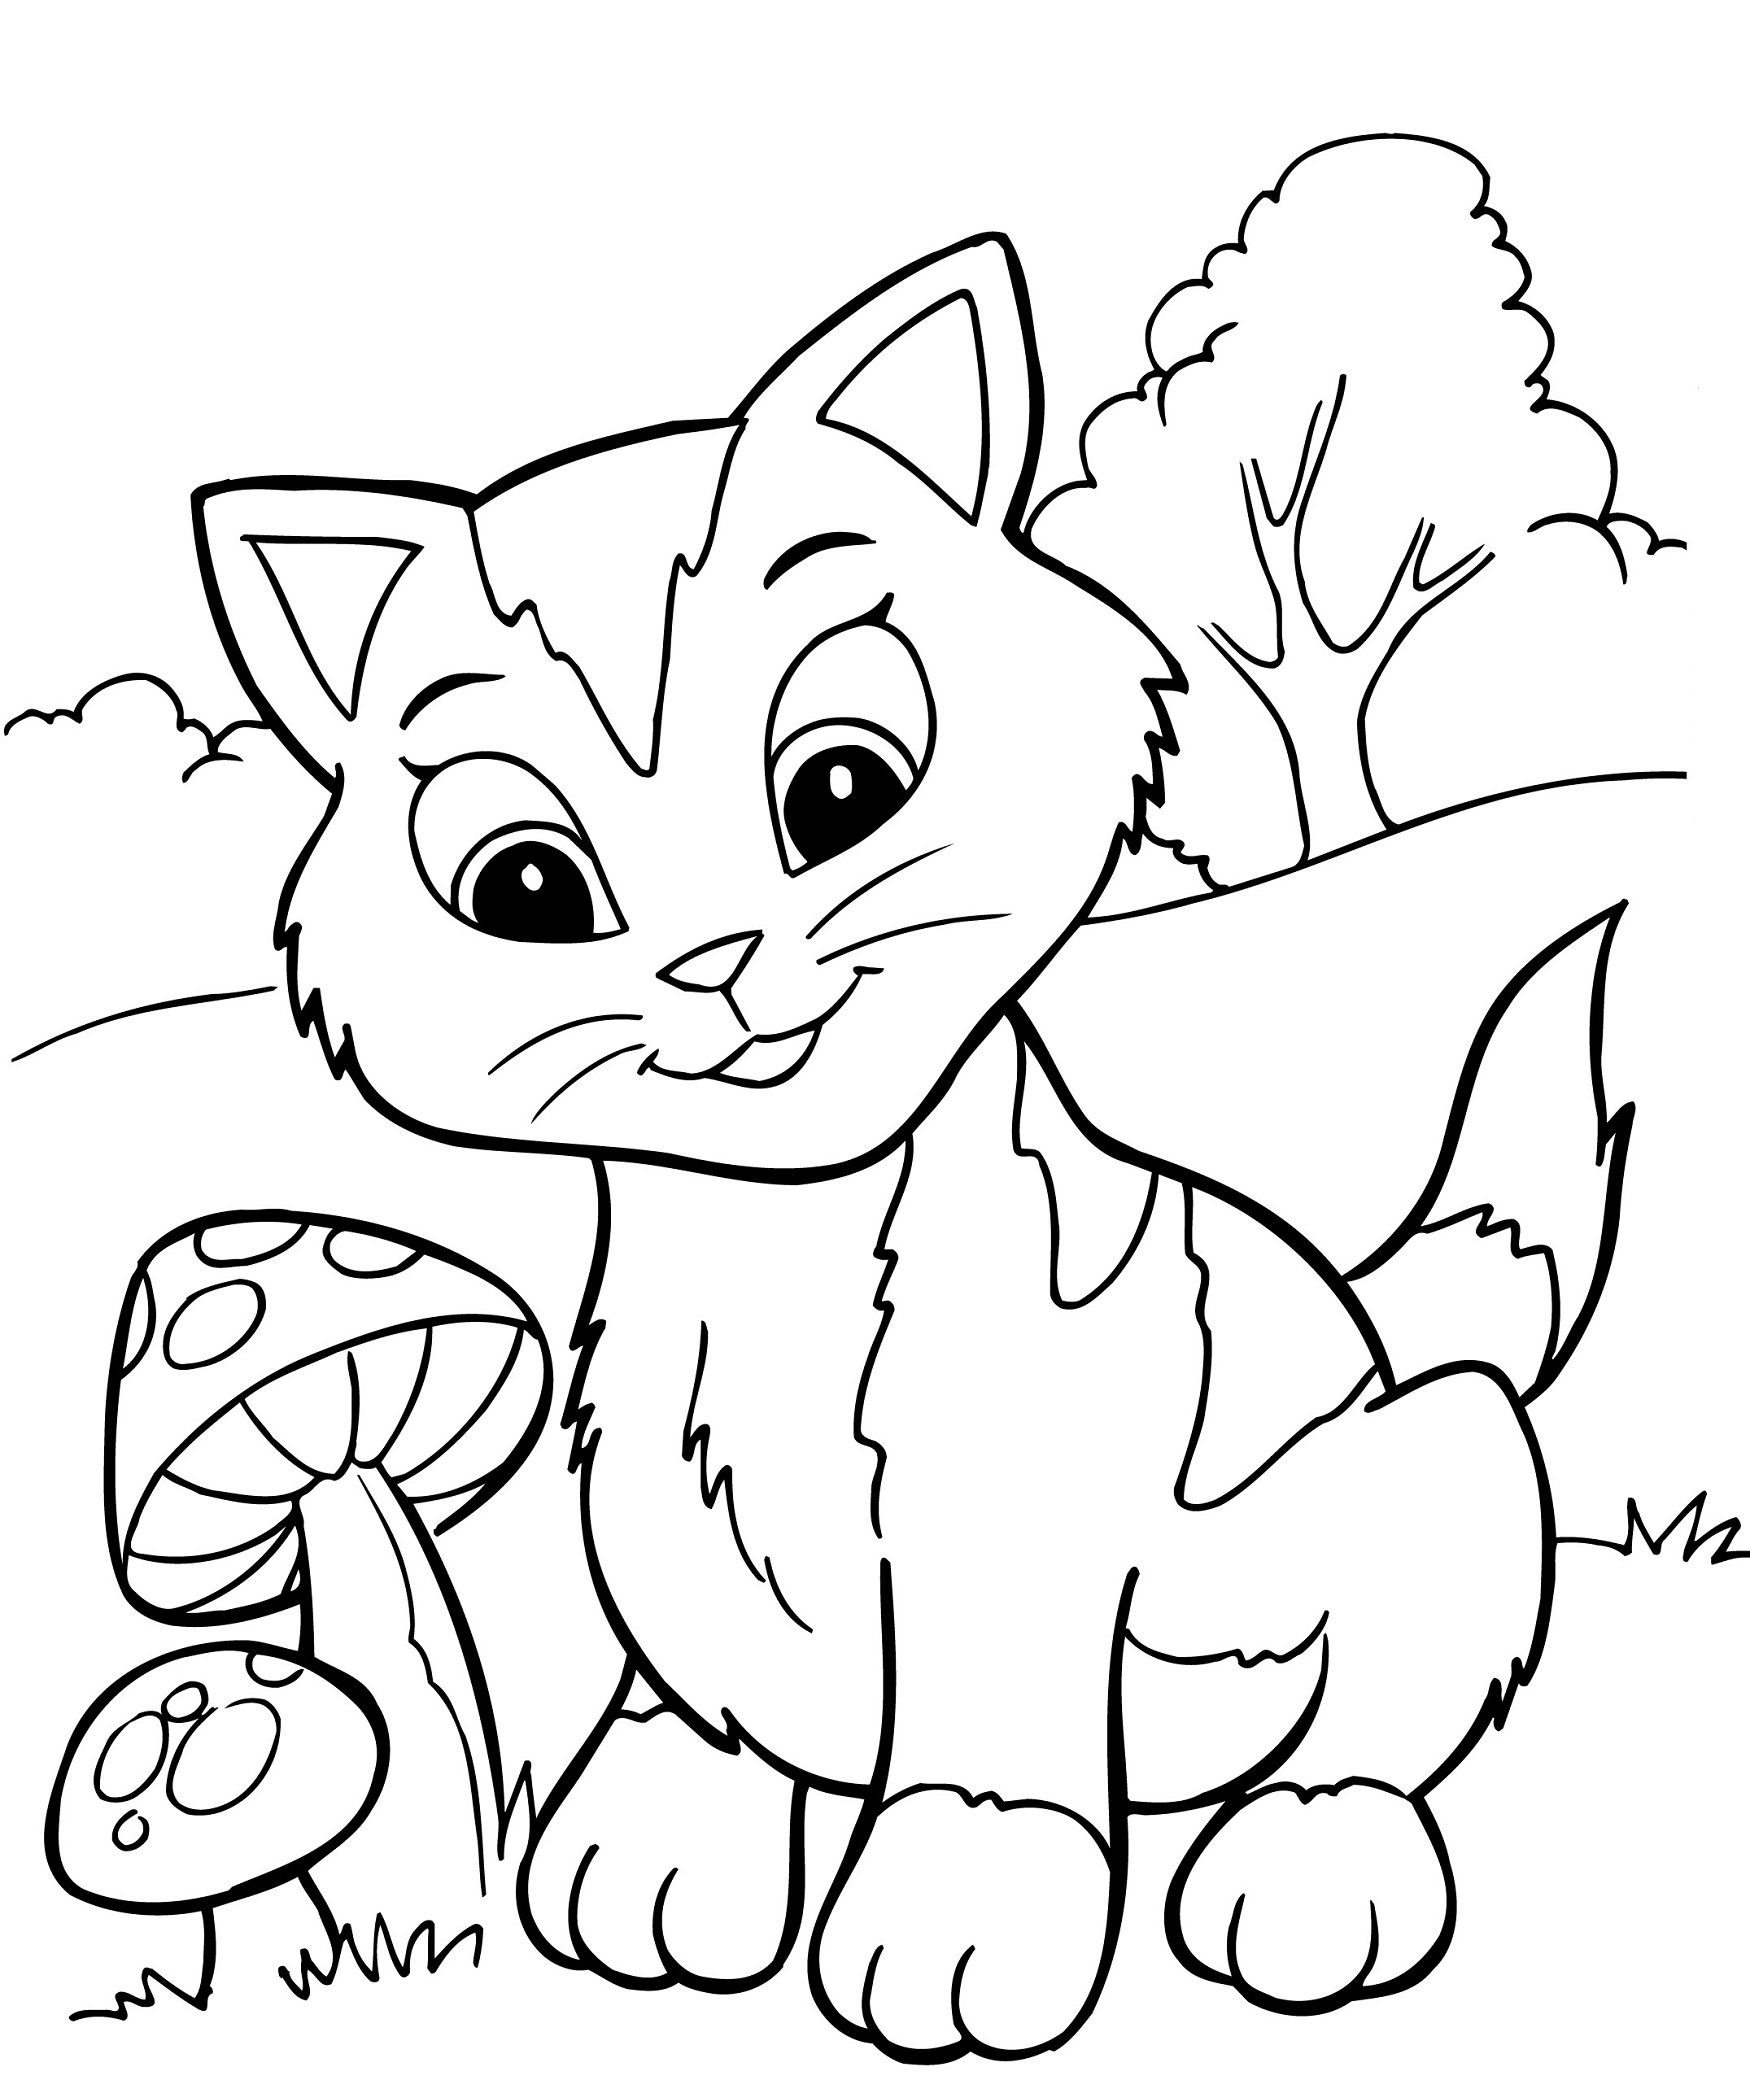 Uncategorized Coloring Pictures Of Kittens free printable kitten coloring pages for kids best kittens page